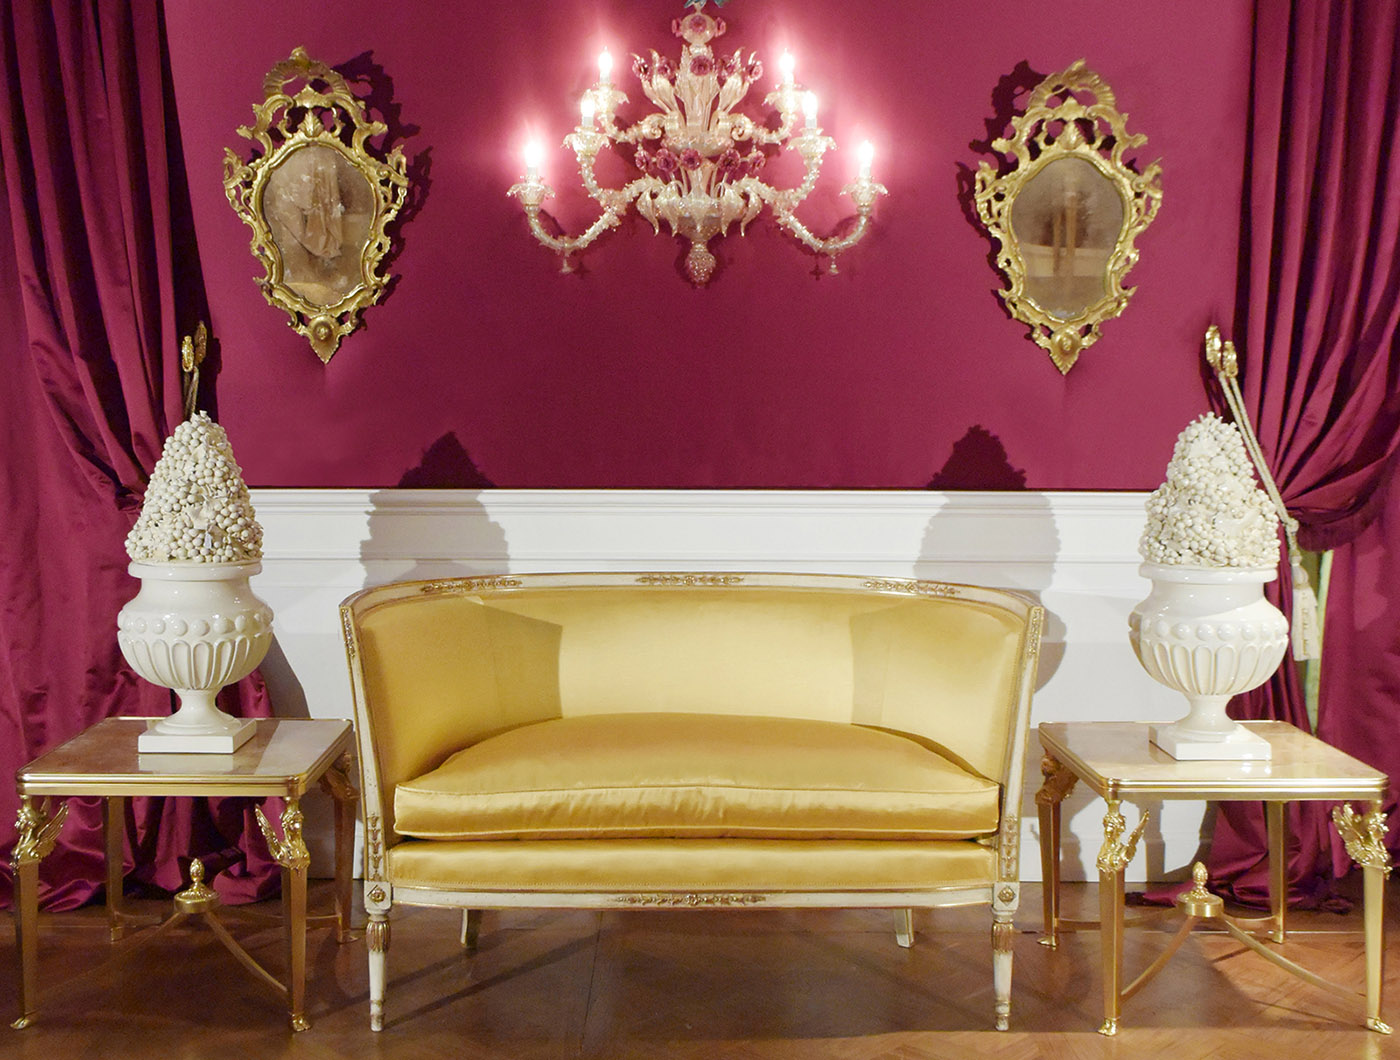 Italian empire sofa, gilt brass table, venetian mirror, Murano applique | P.& G. Cugini Lanzani